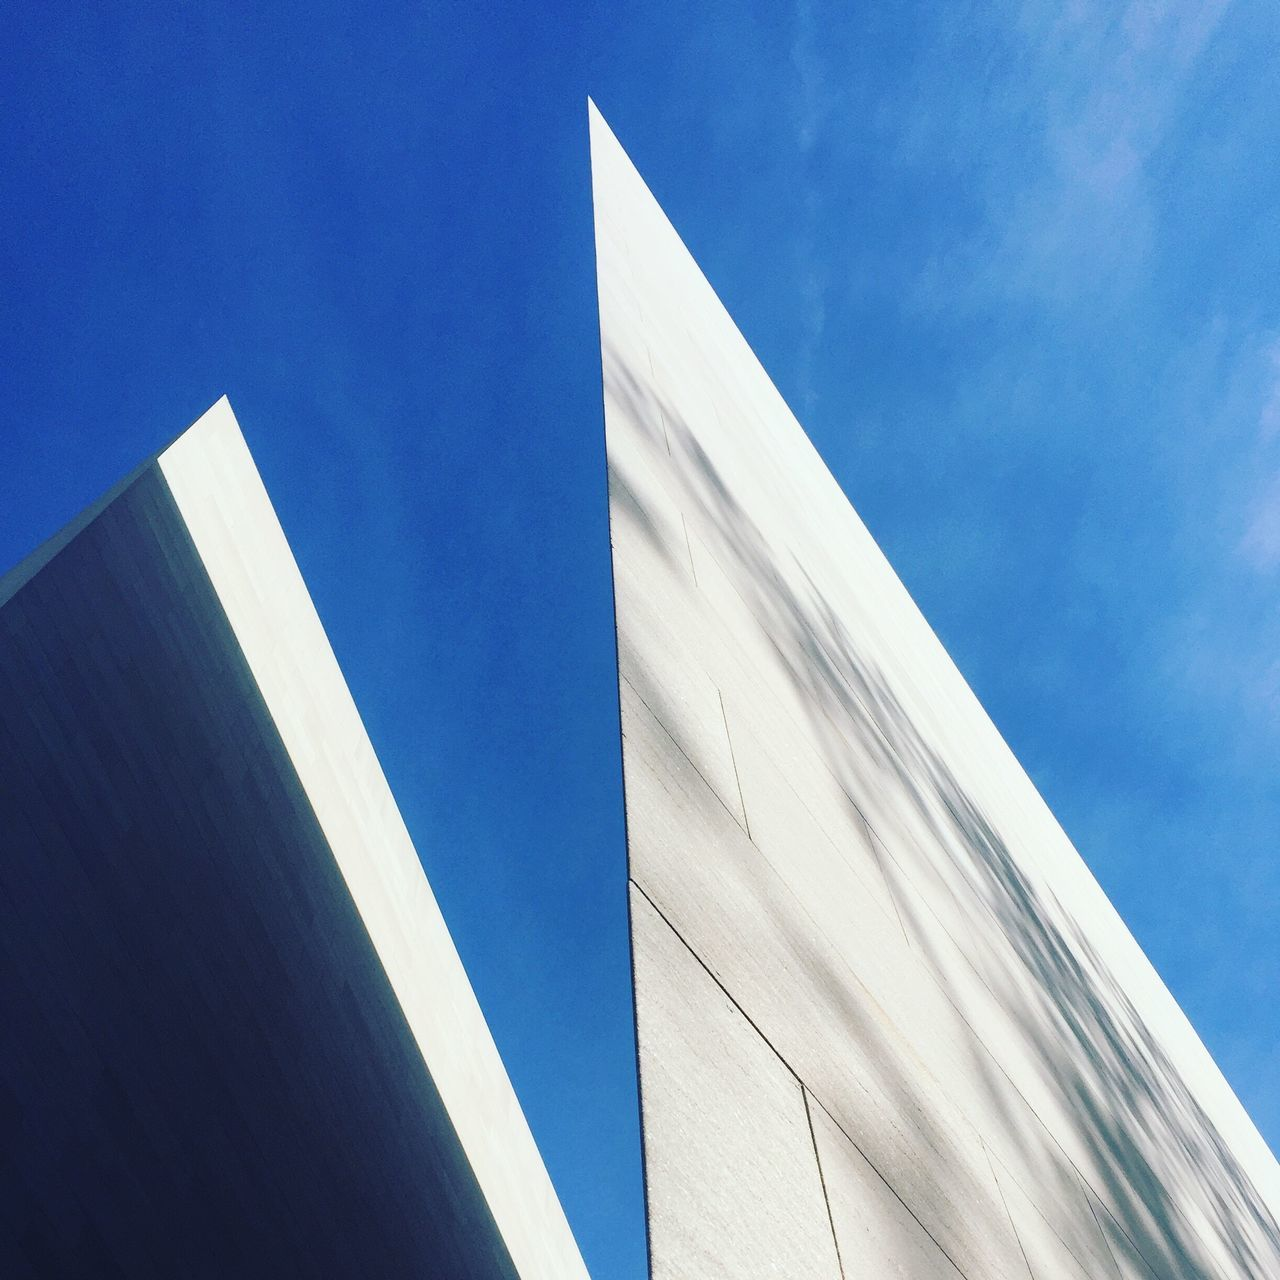 low angle view, built structure, architecture, blue, building exterior, day, no people, modern, outdoors, sky, clear sky